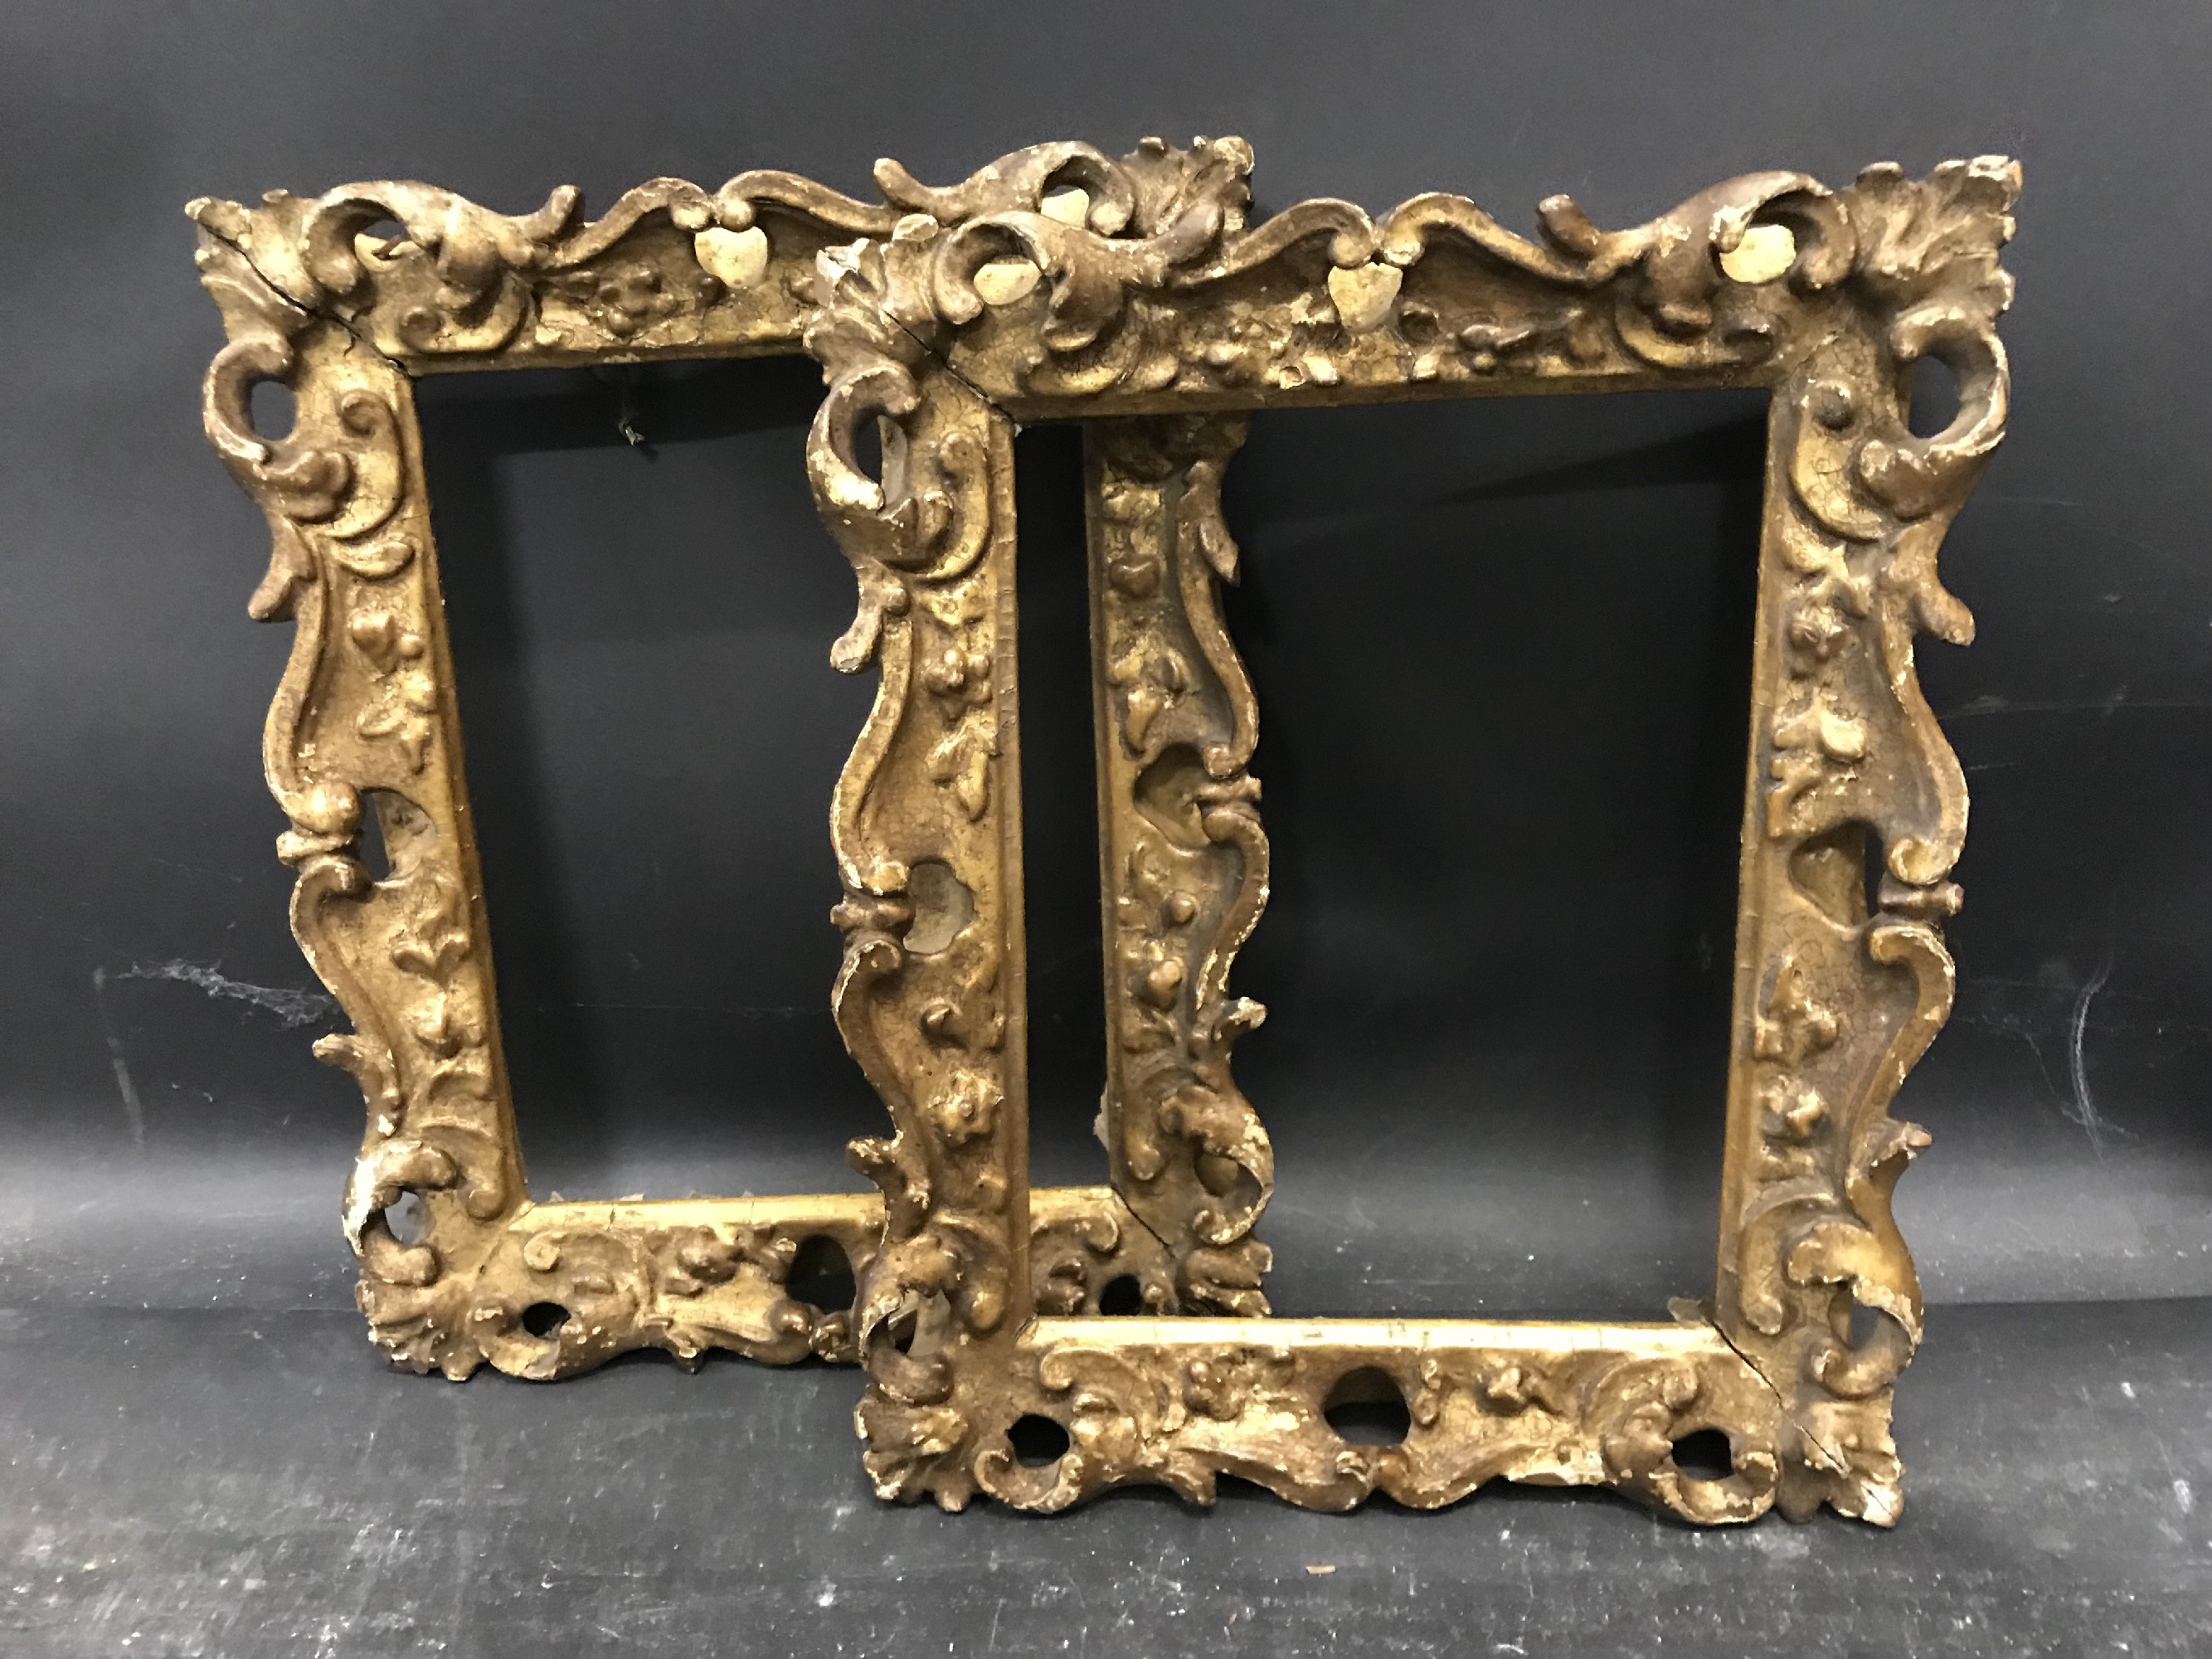 Lot 33 - 19th Century English School. A Carved Giltwood Frame, with Swept and Pierce Centres and Corners, 7.